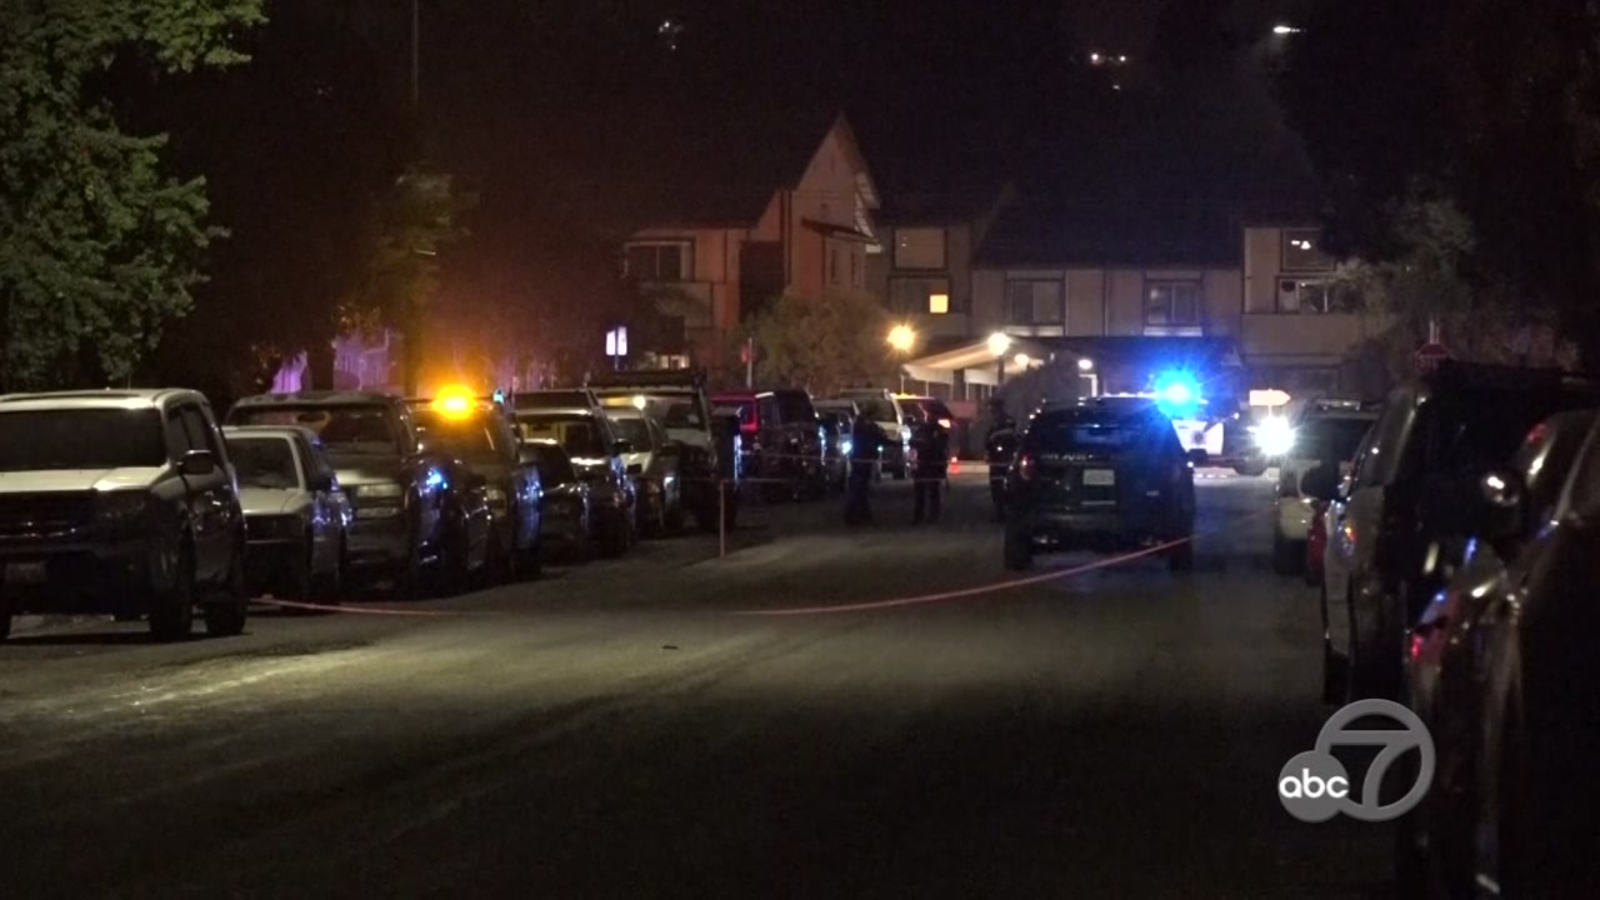 2 Killed 3 Others Injured In Friday Night Shooting In San